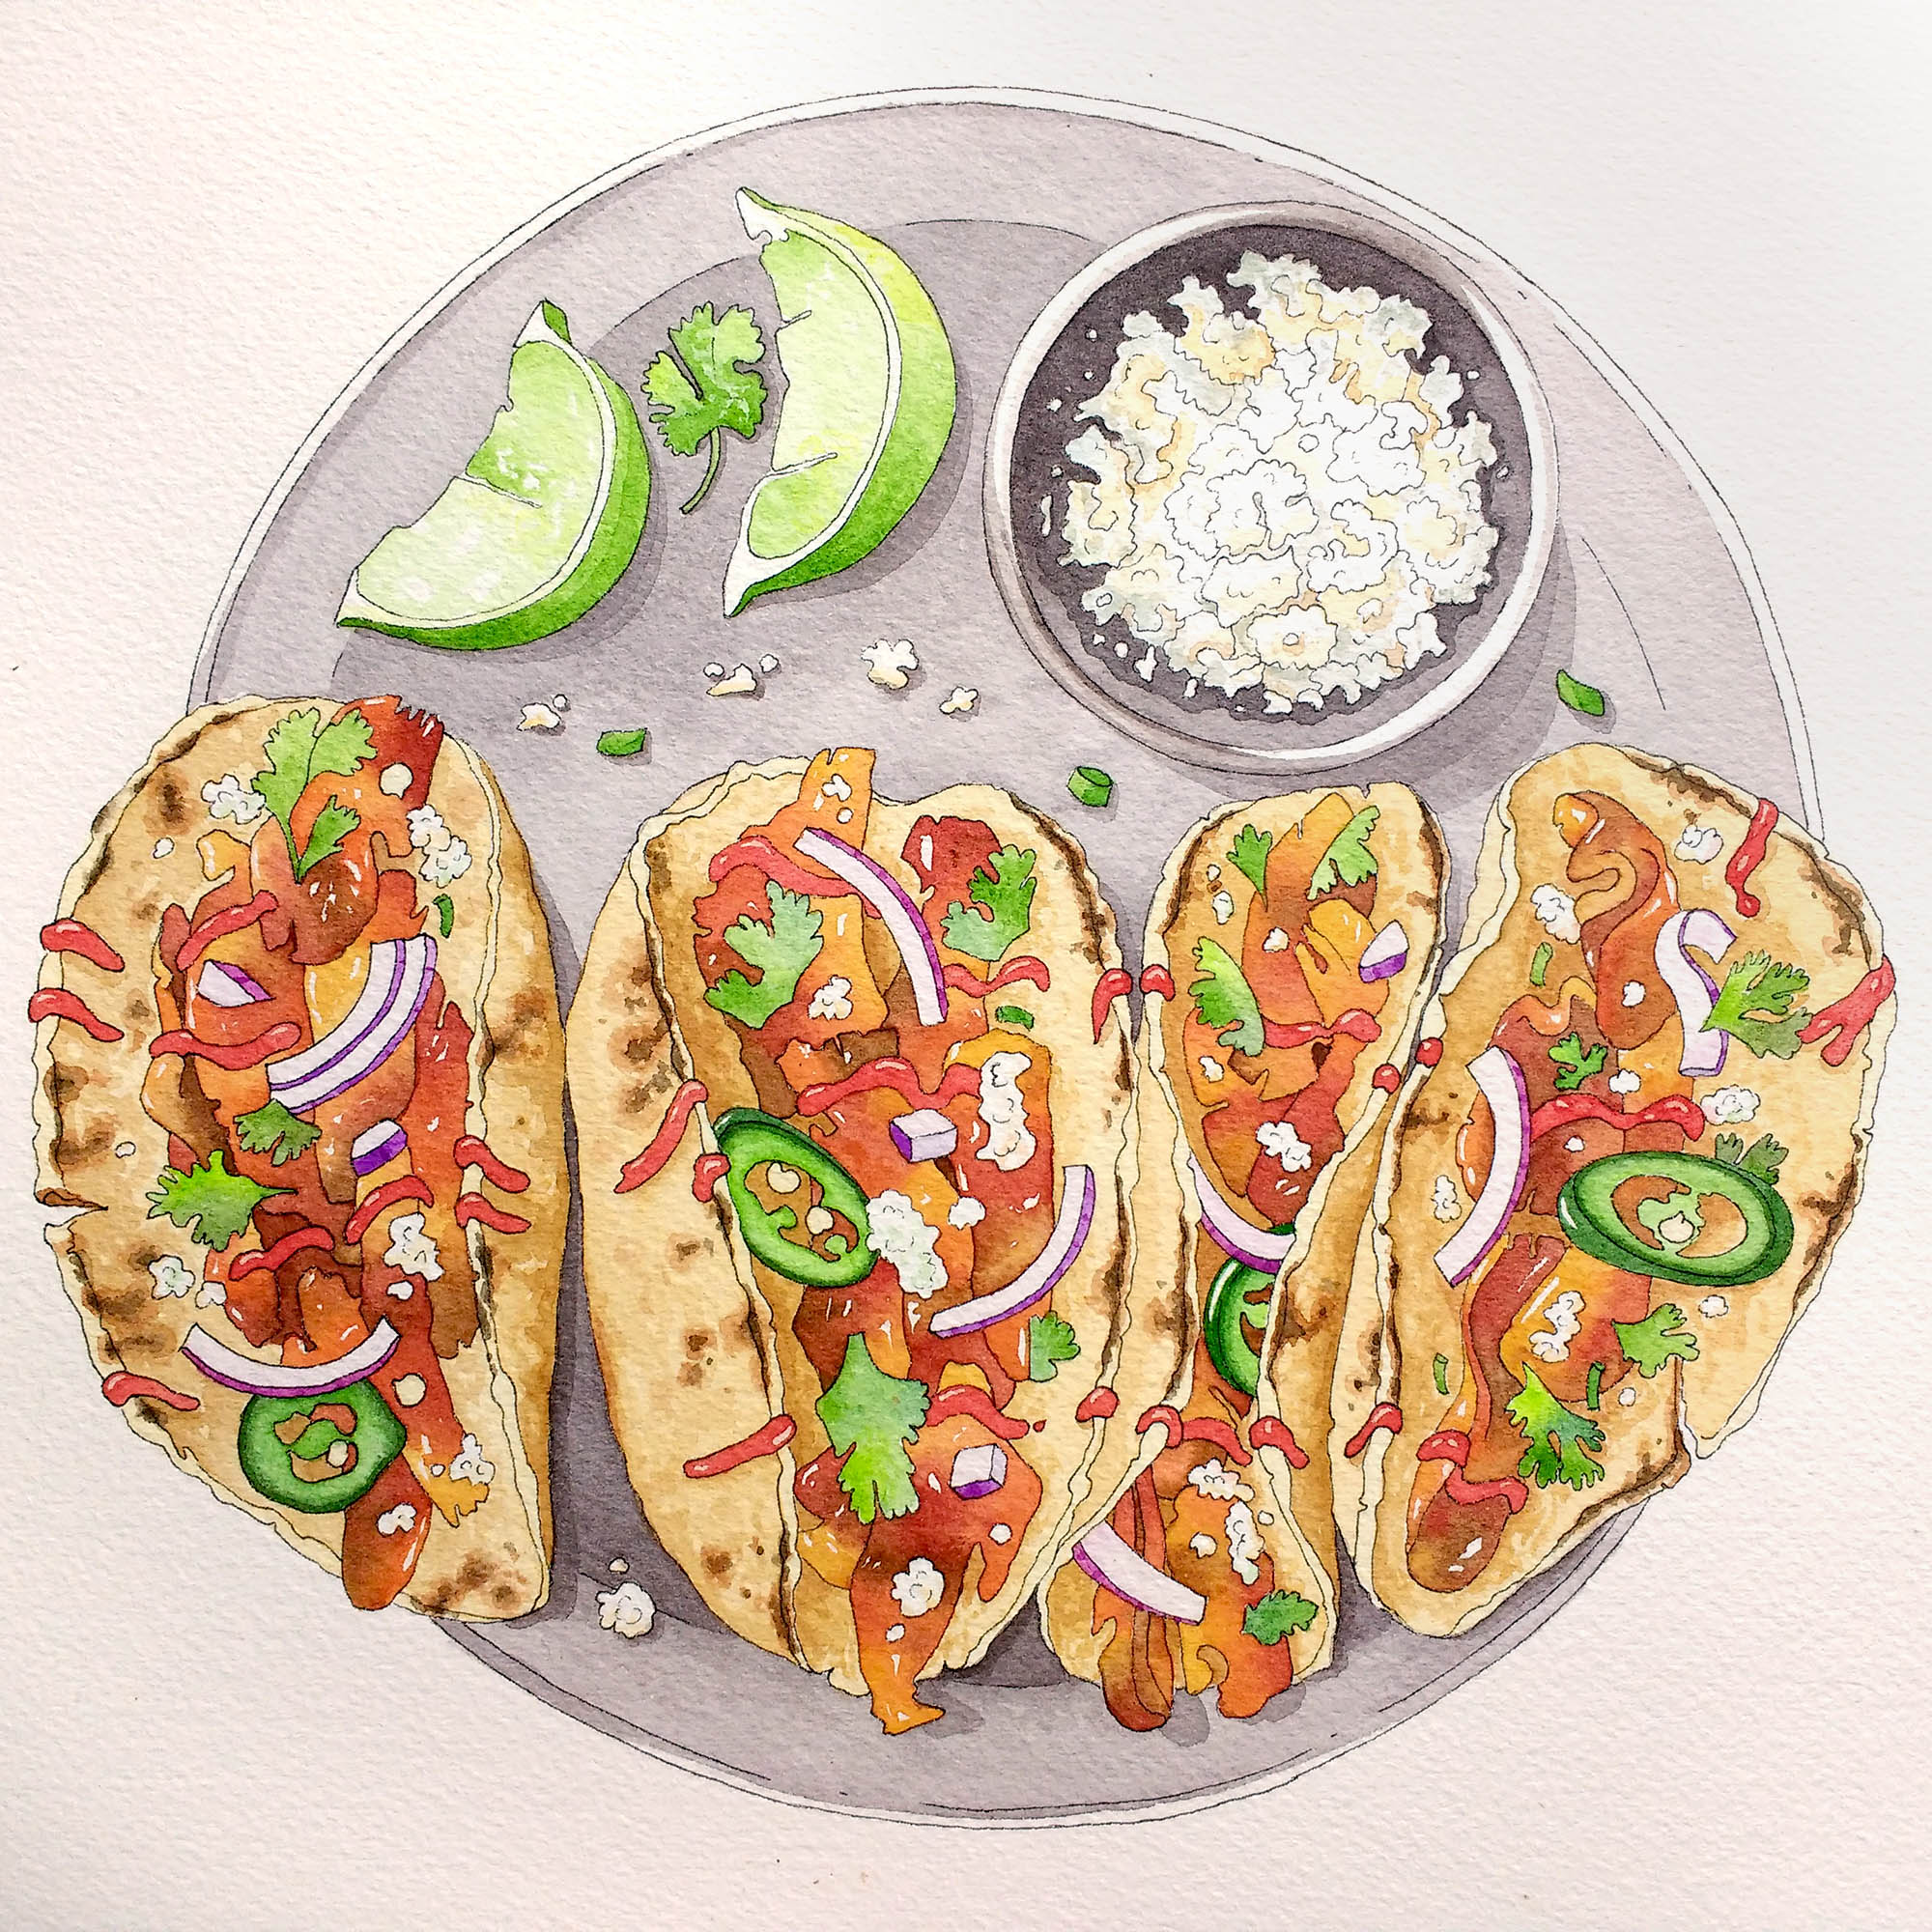 Finished watercolor food illustration